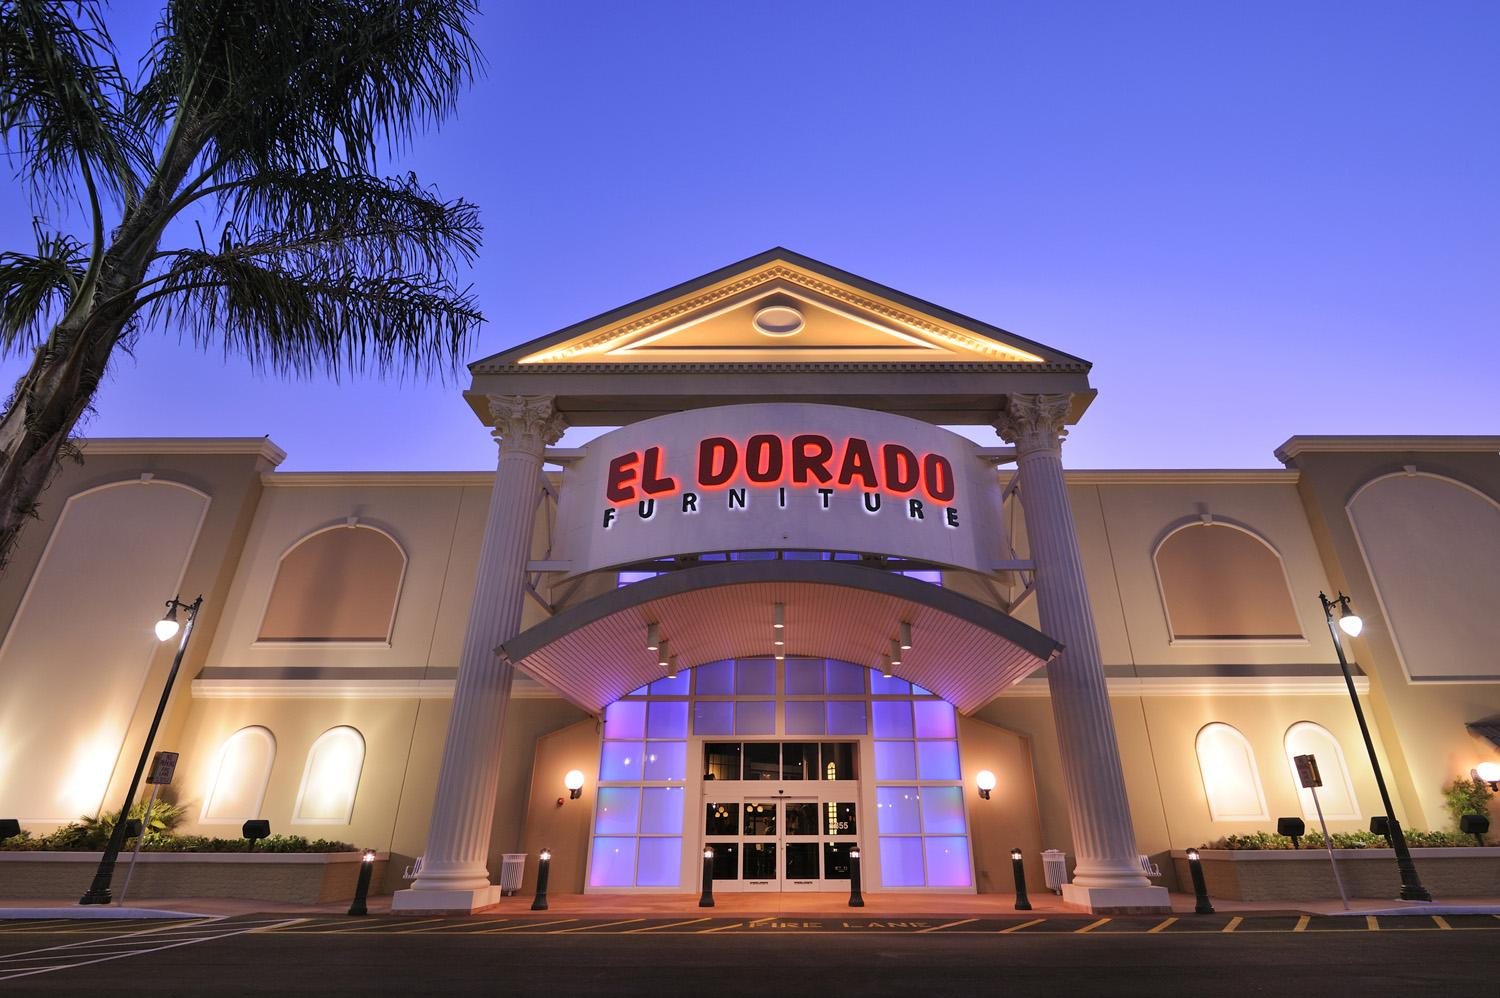 El Dorado Furniture  Miami, Fl  About. Red Living Rooms. Decorative Entry Door Hardware. Decorative Downspouts. Rooms For Rent In Grand Prairie Tx. Country Christmas Tree Decorations. Wrought Iron Outdoor Decor. Ontario Rooms For Rent. Grow Room Dehumidifier